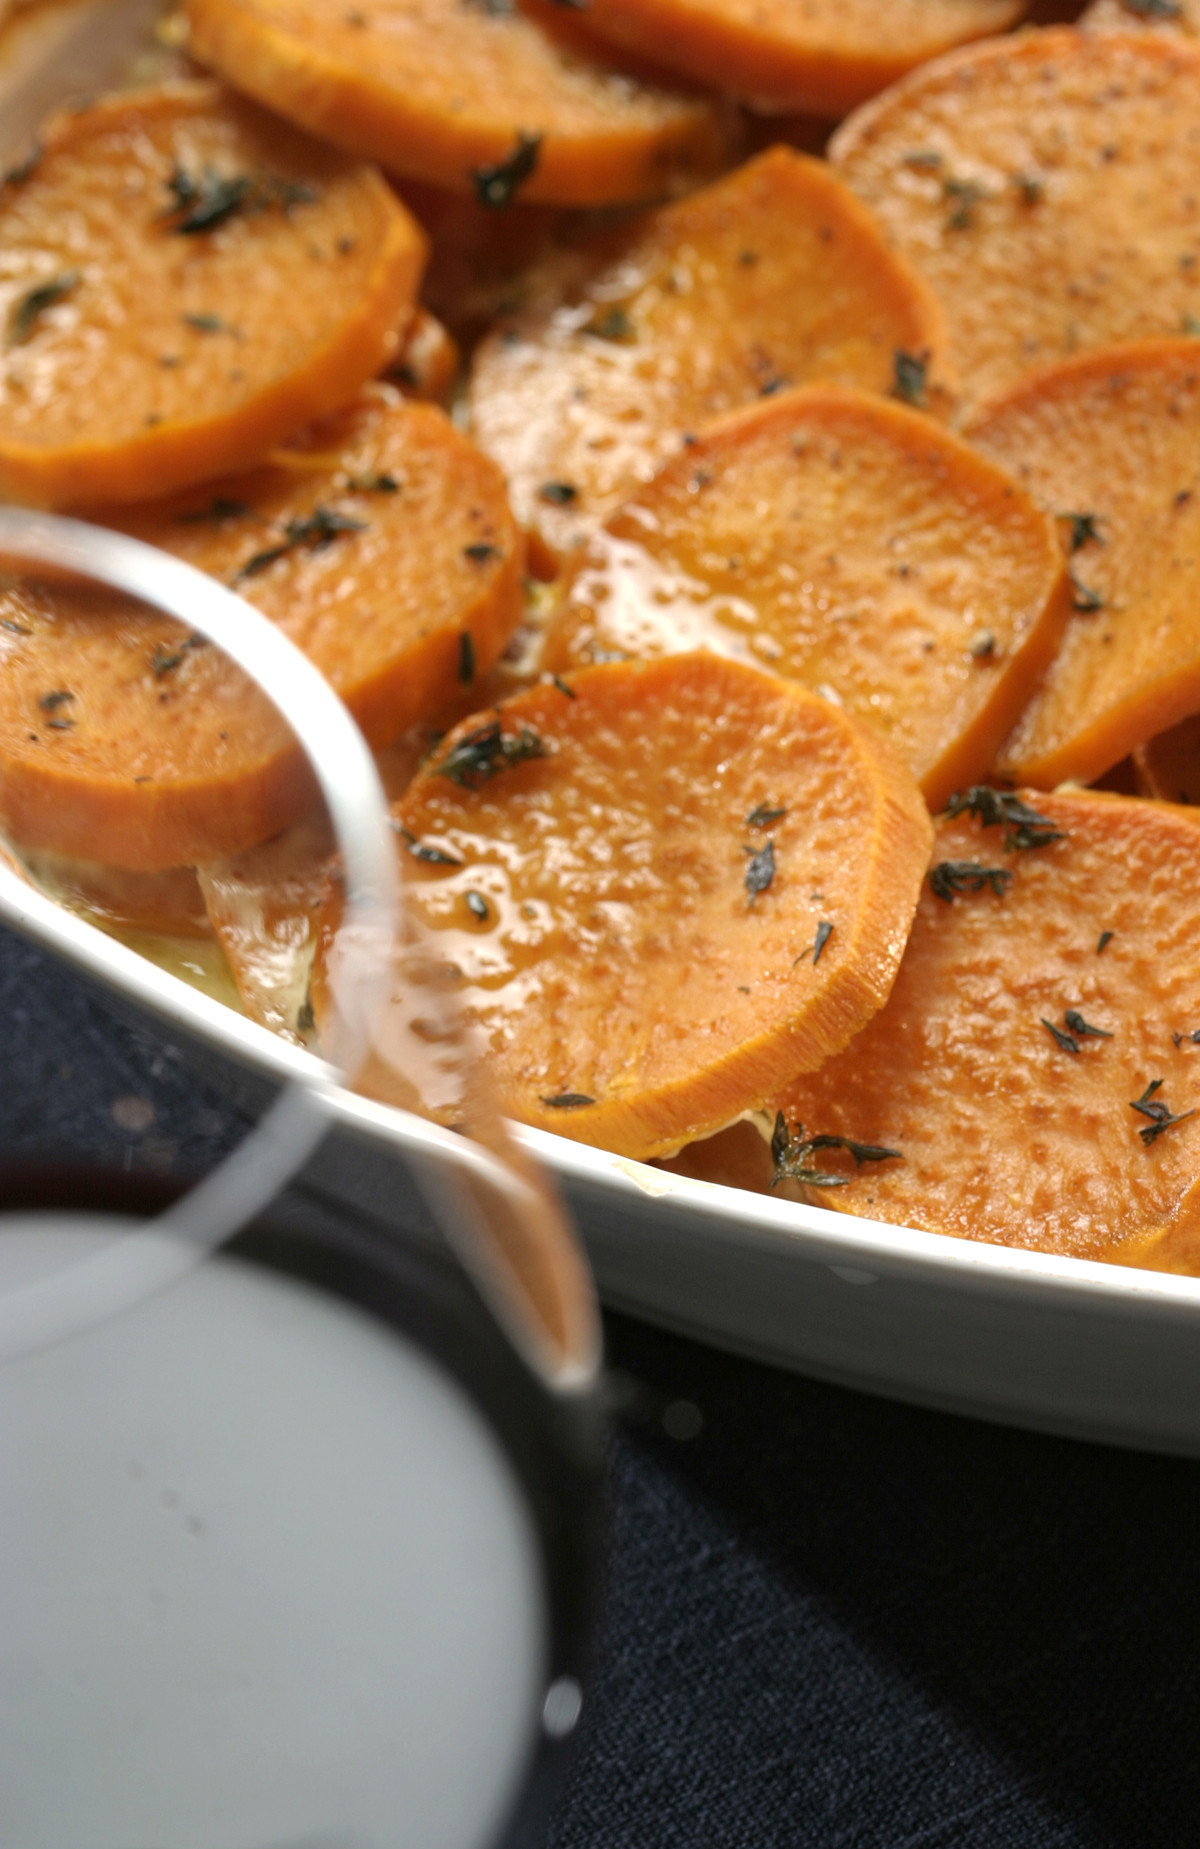 Photos: 97 great Thanksgiving recipes - Sweet potato gratin